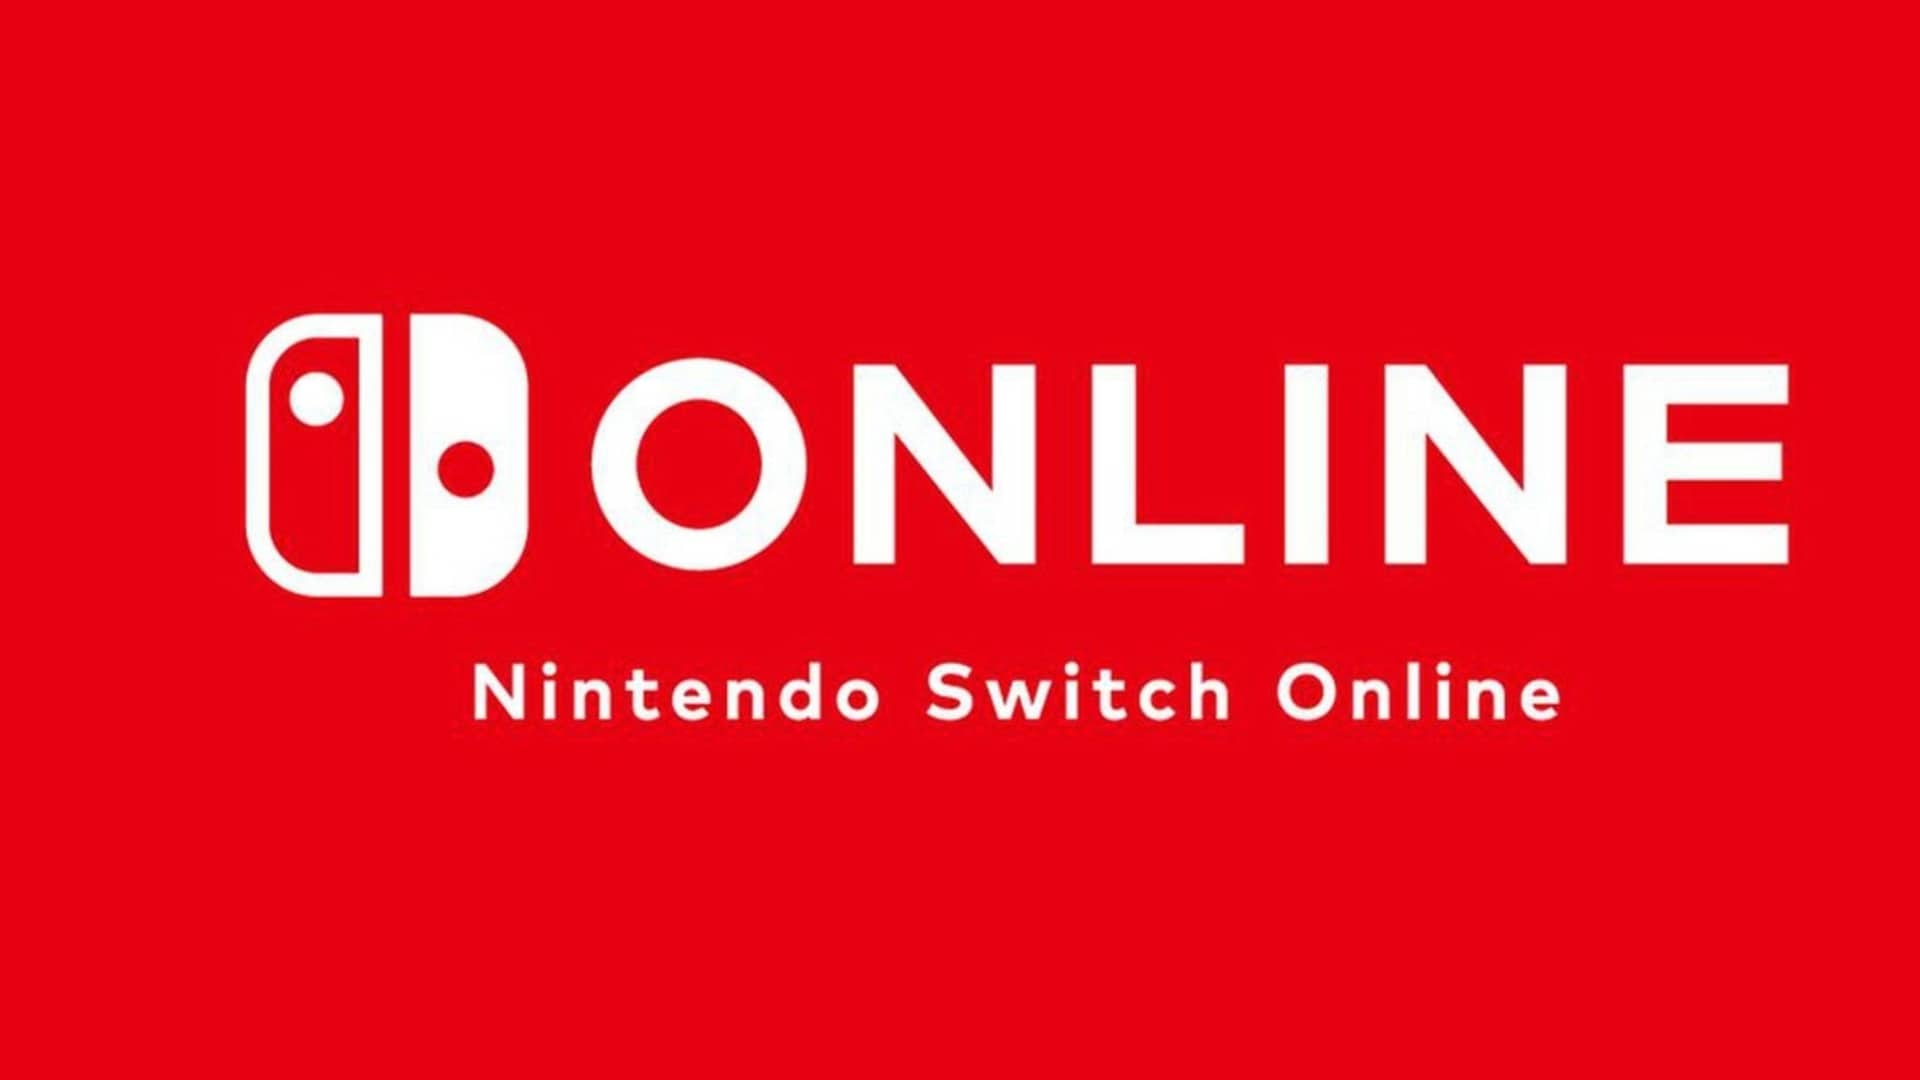 Nintendo Switch Online NES and Famicom updated